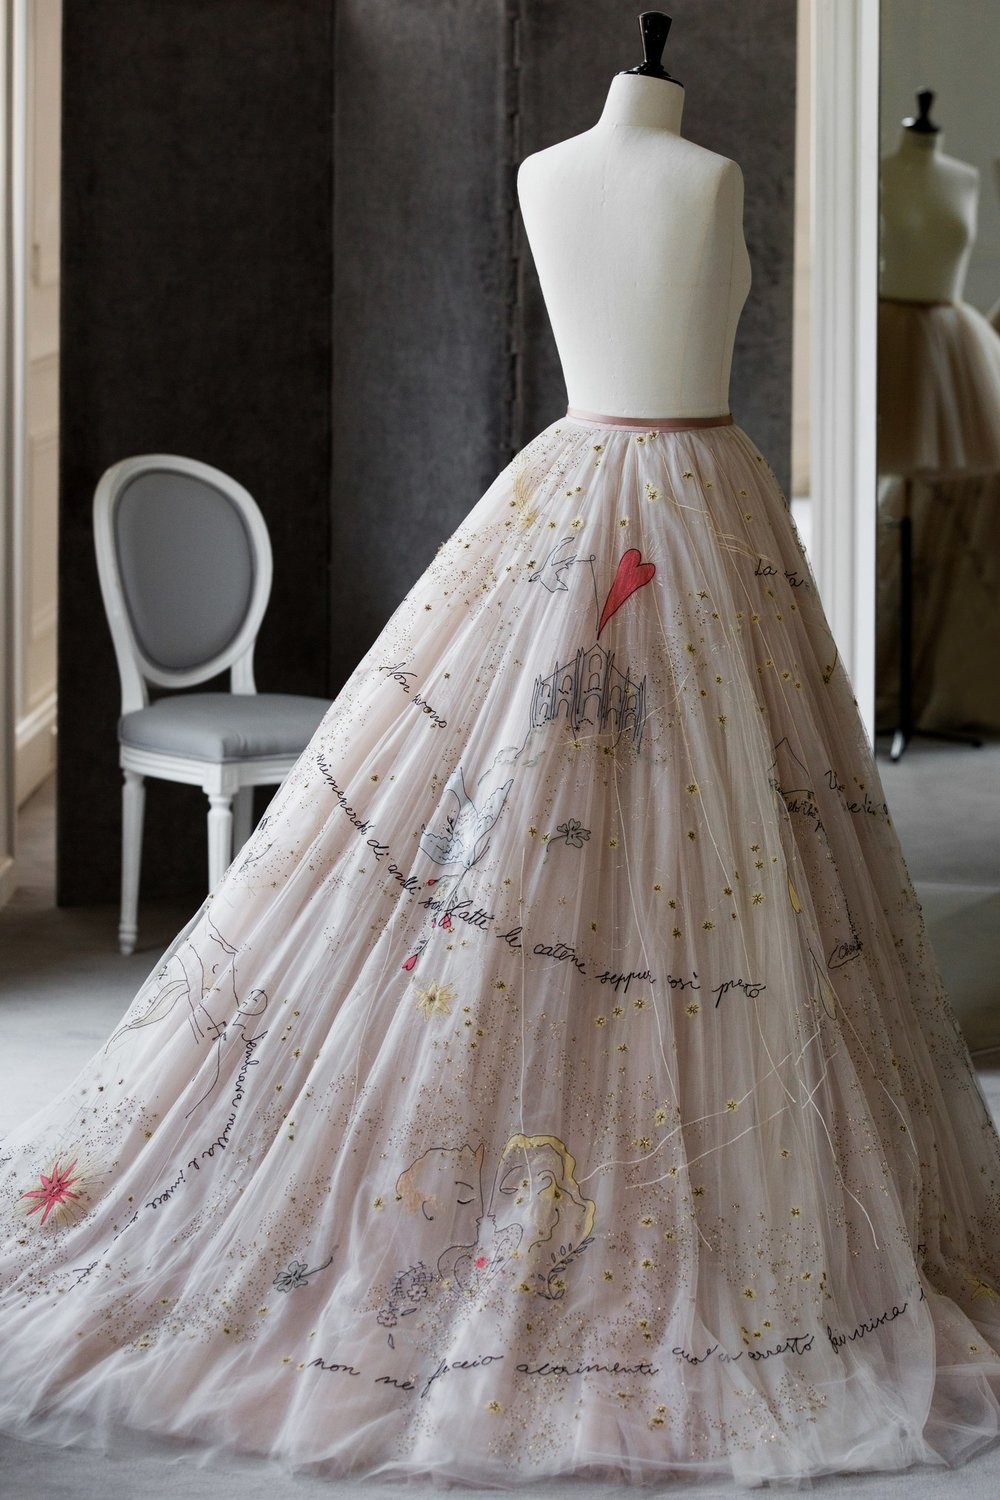 DIOR_CHIARA_FERRAGNI_FITTINGS_WEDDING_%20%C2%A9%20SOPHIE%20CARRE_6.jpg